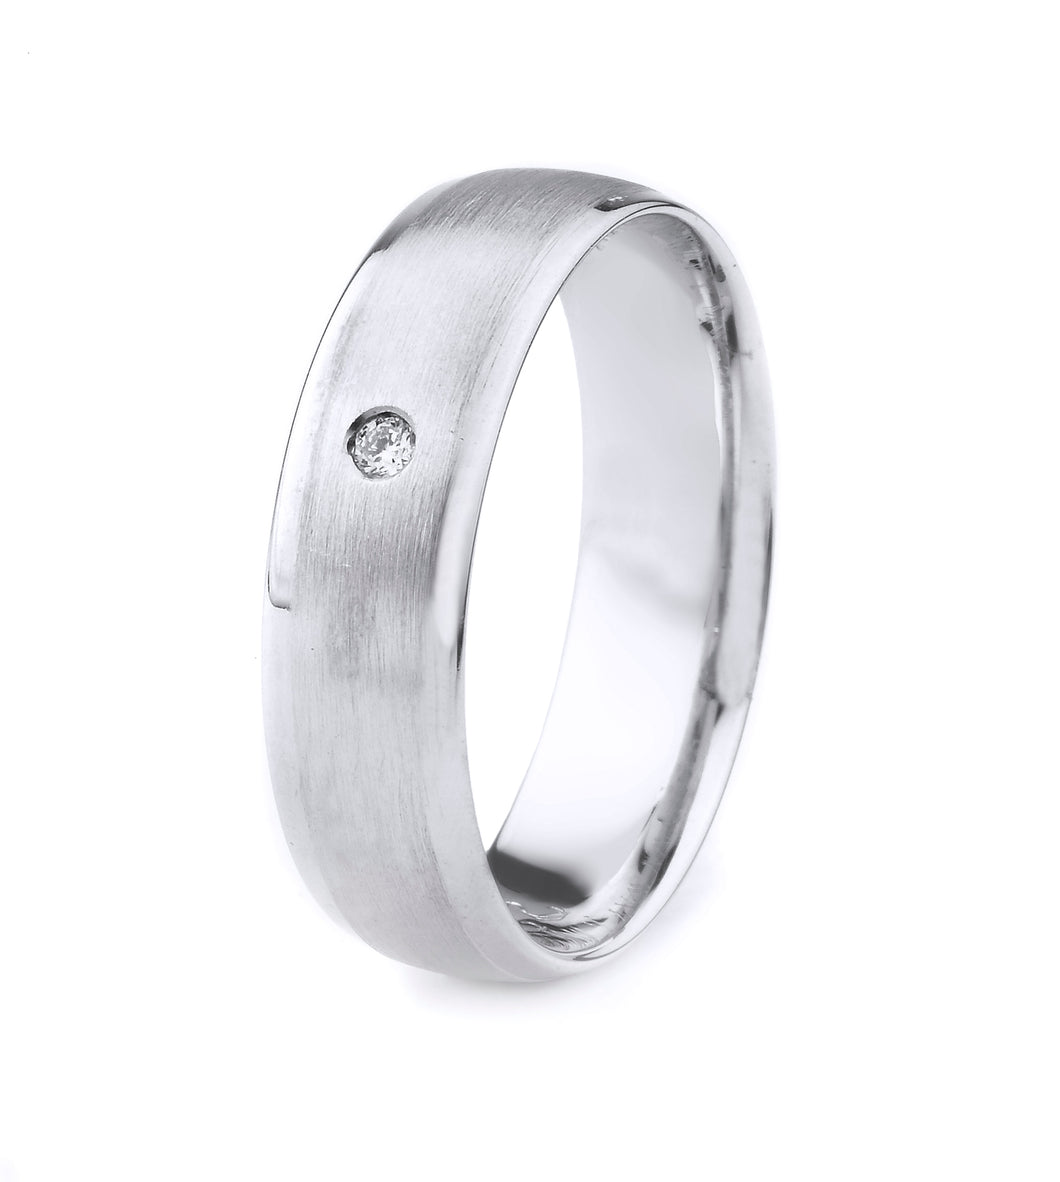 PLATINUM MEN'S WEDDING BAND WITH SATIN FINISH, MILGRAIN AND BEVELED EDGES | SINGLE DIAMOND (.02CTTW)